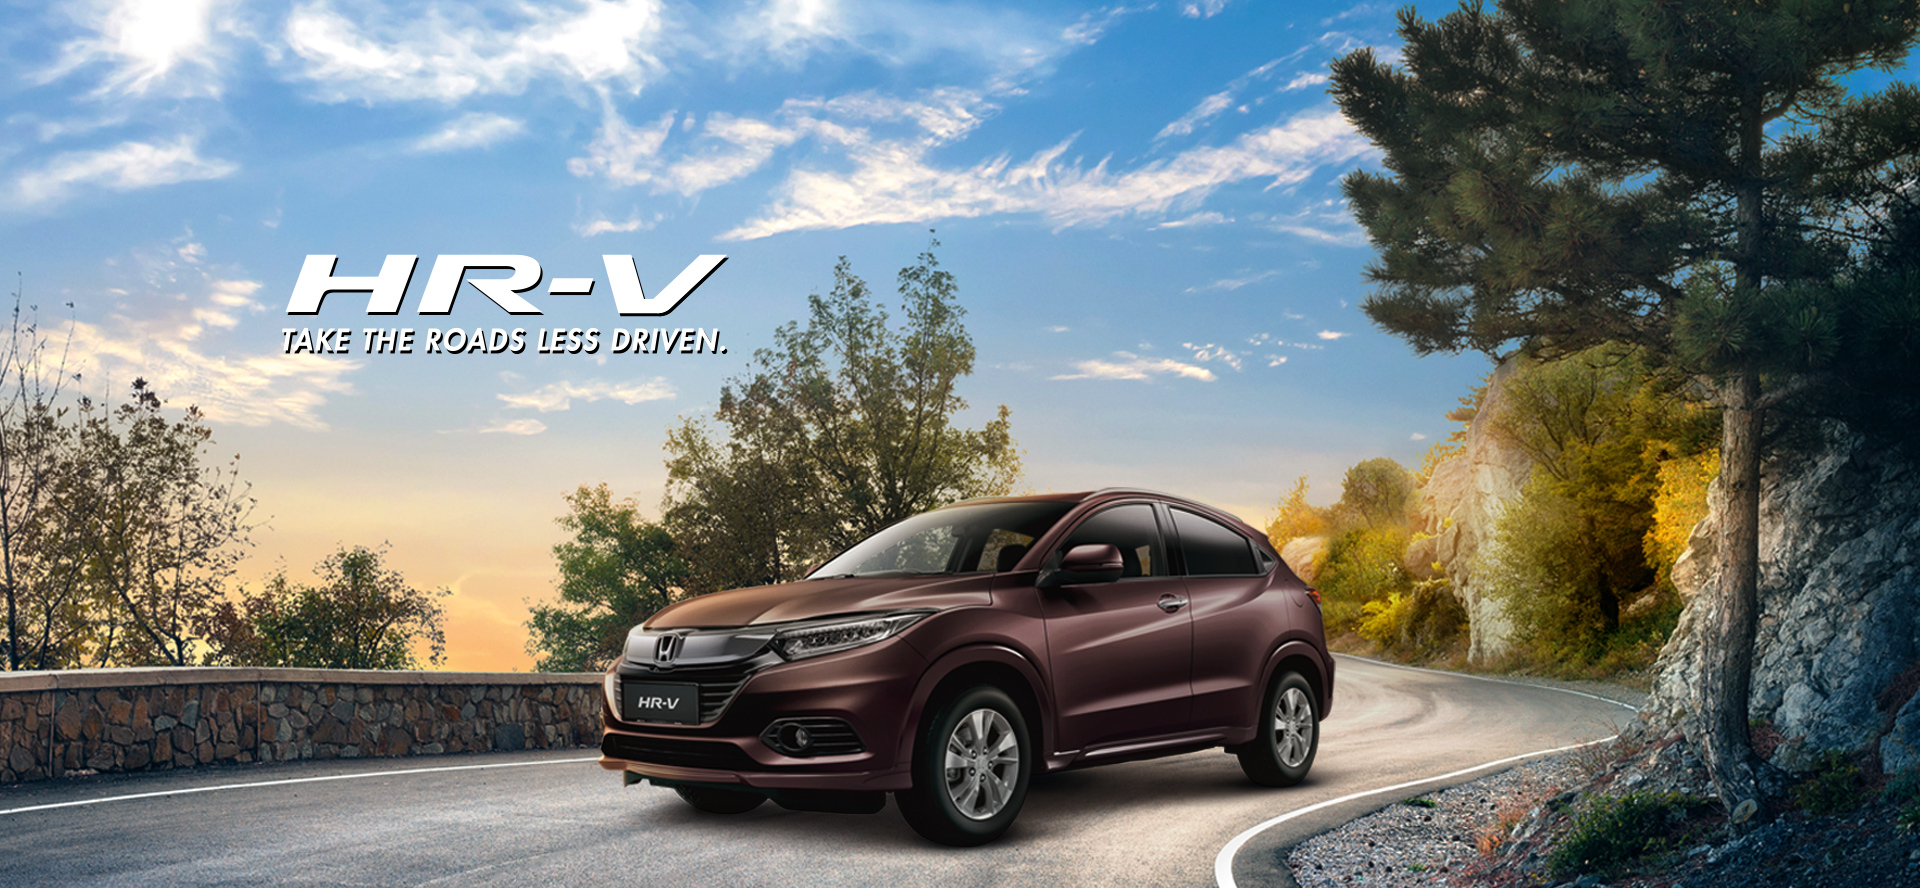 HR-V_Revised_ Honda HR-V